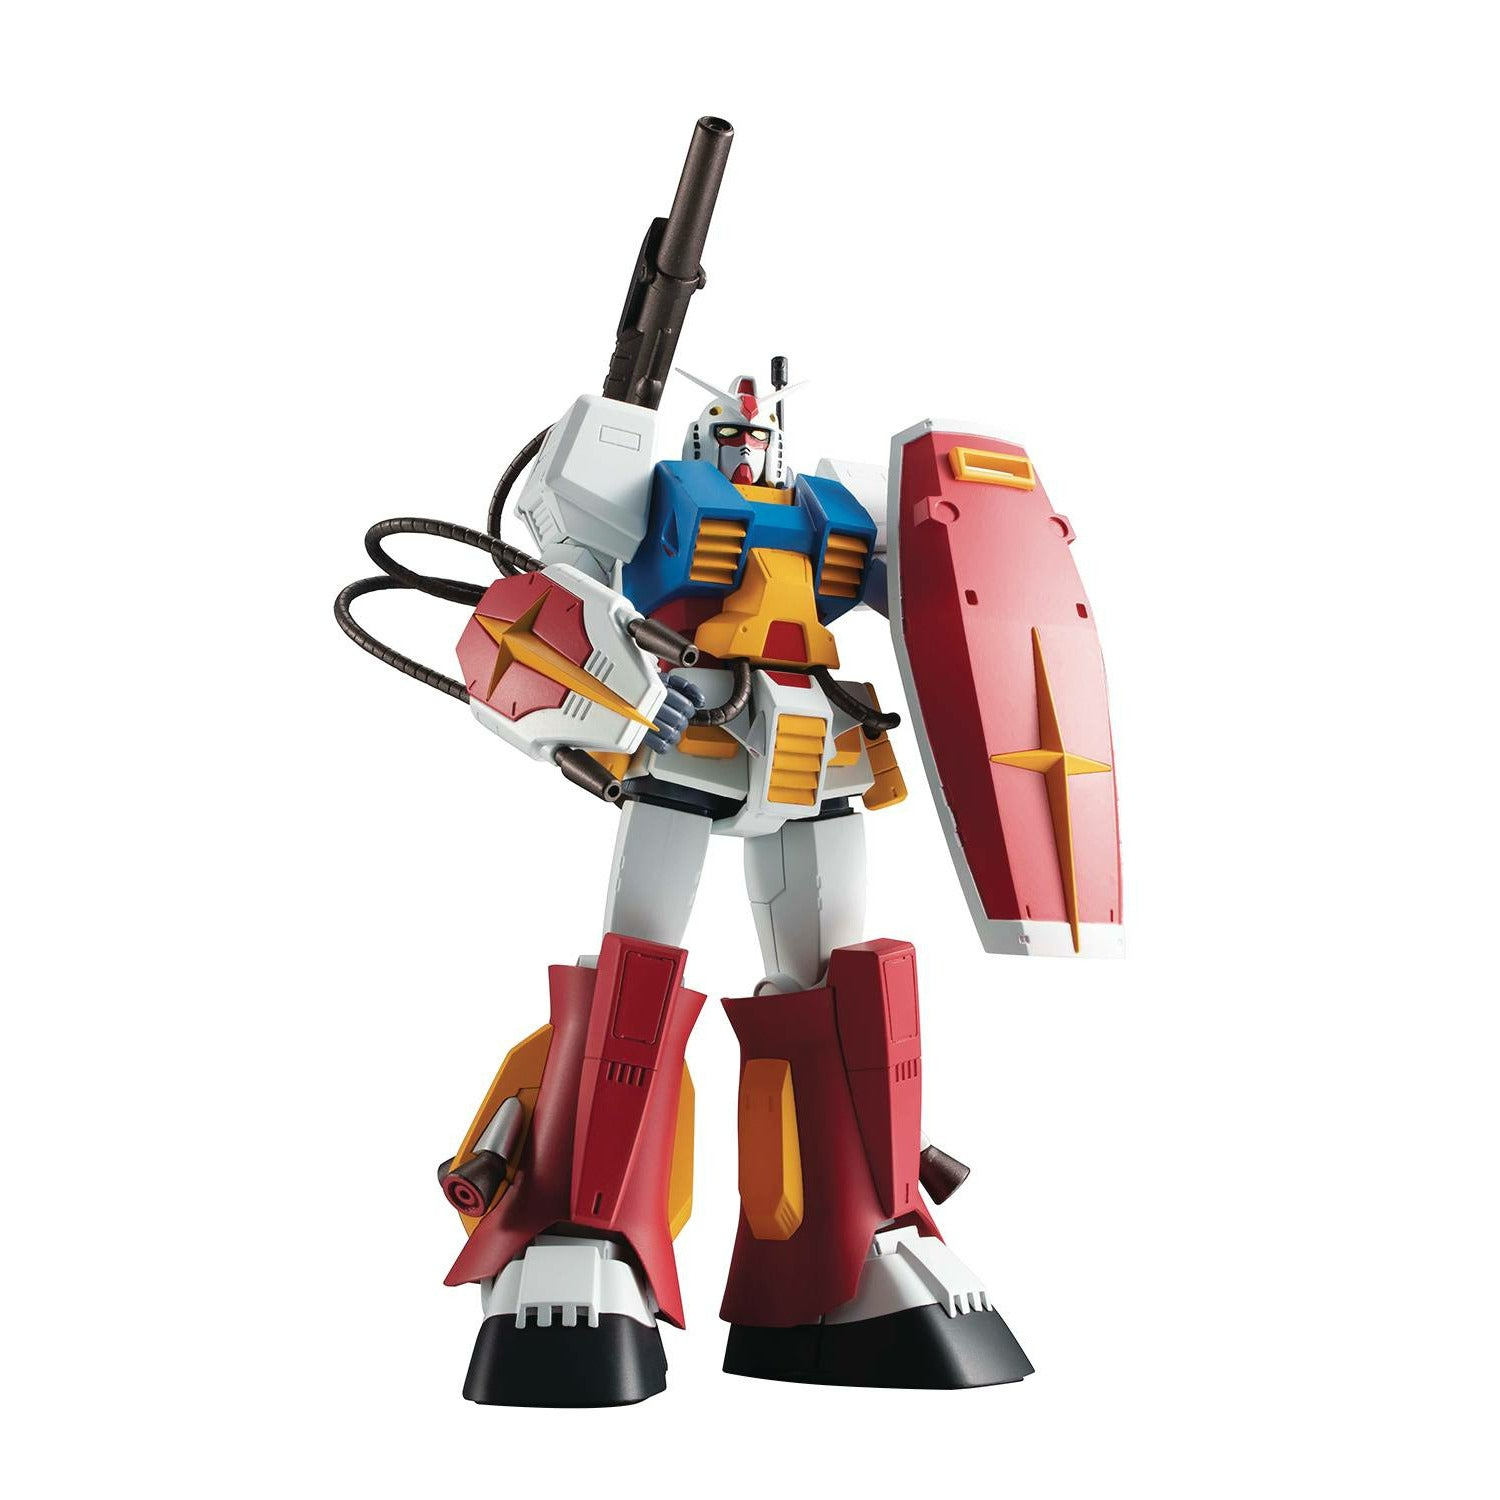 Plamo Kyoshiro Pf-78-1 Perfect Gundam Anime Robot Spirits Action Figure